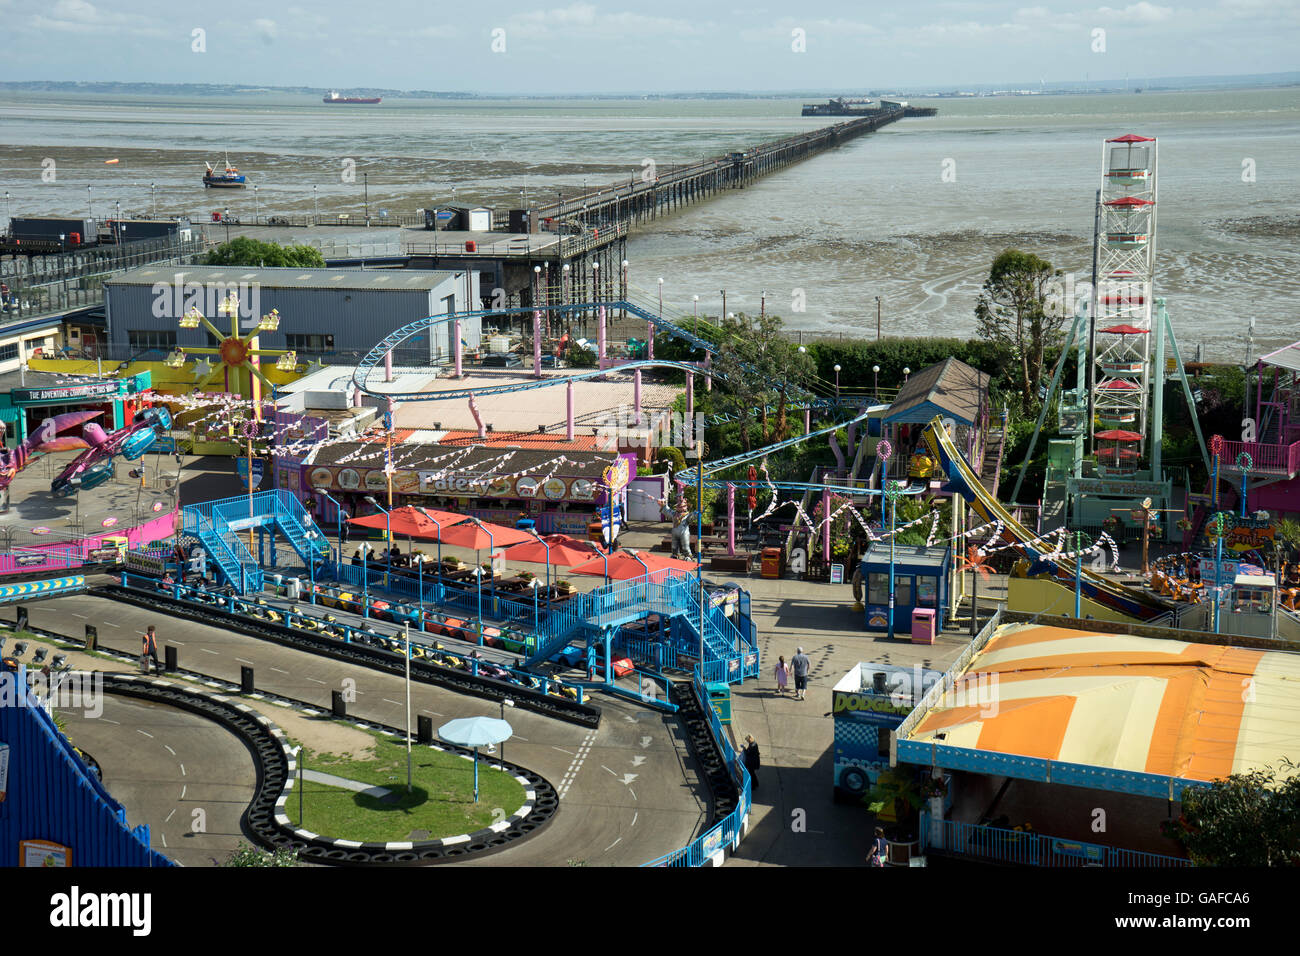 Sea front arcades at Southend-on-Sea. Essex.UK - Stock Image